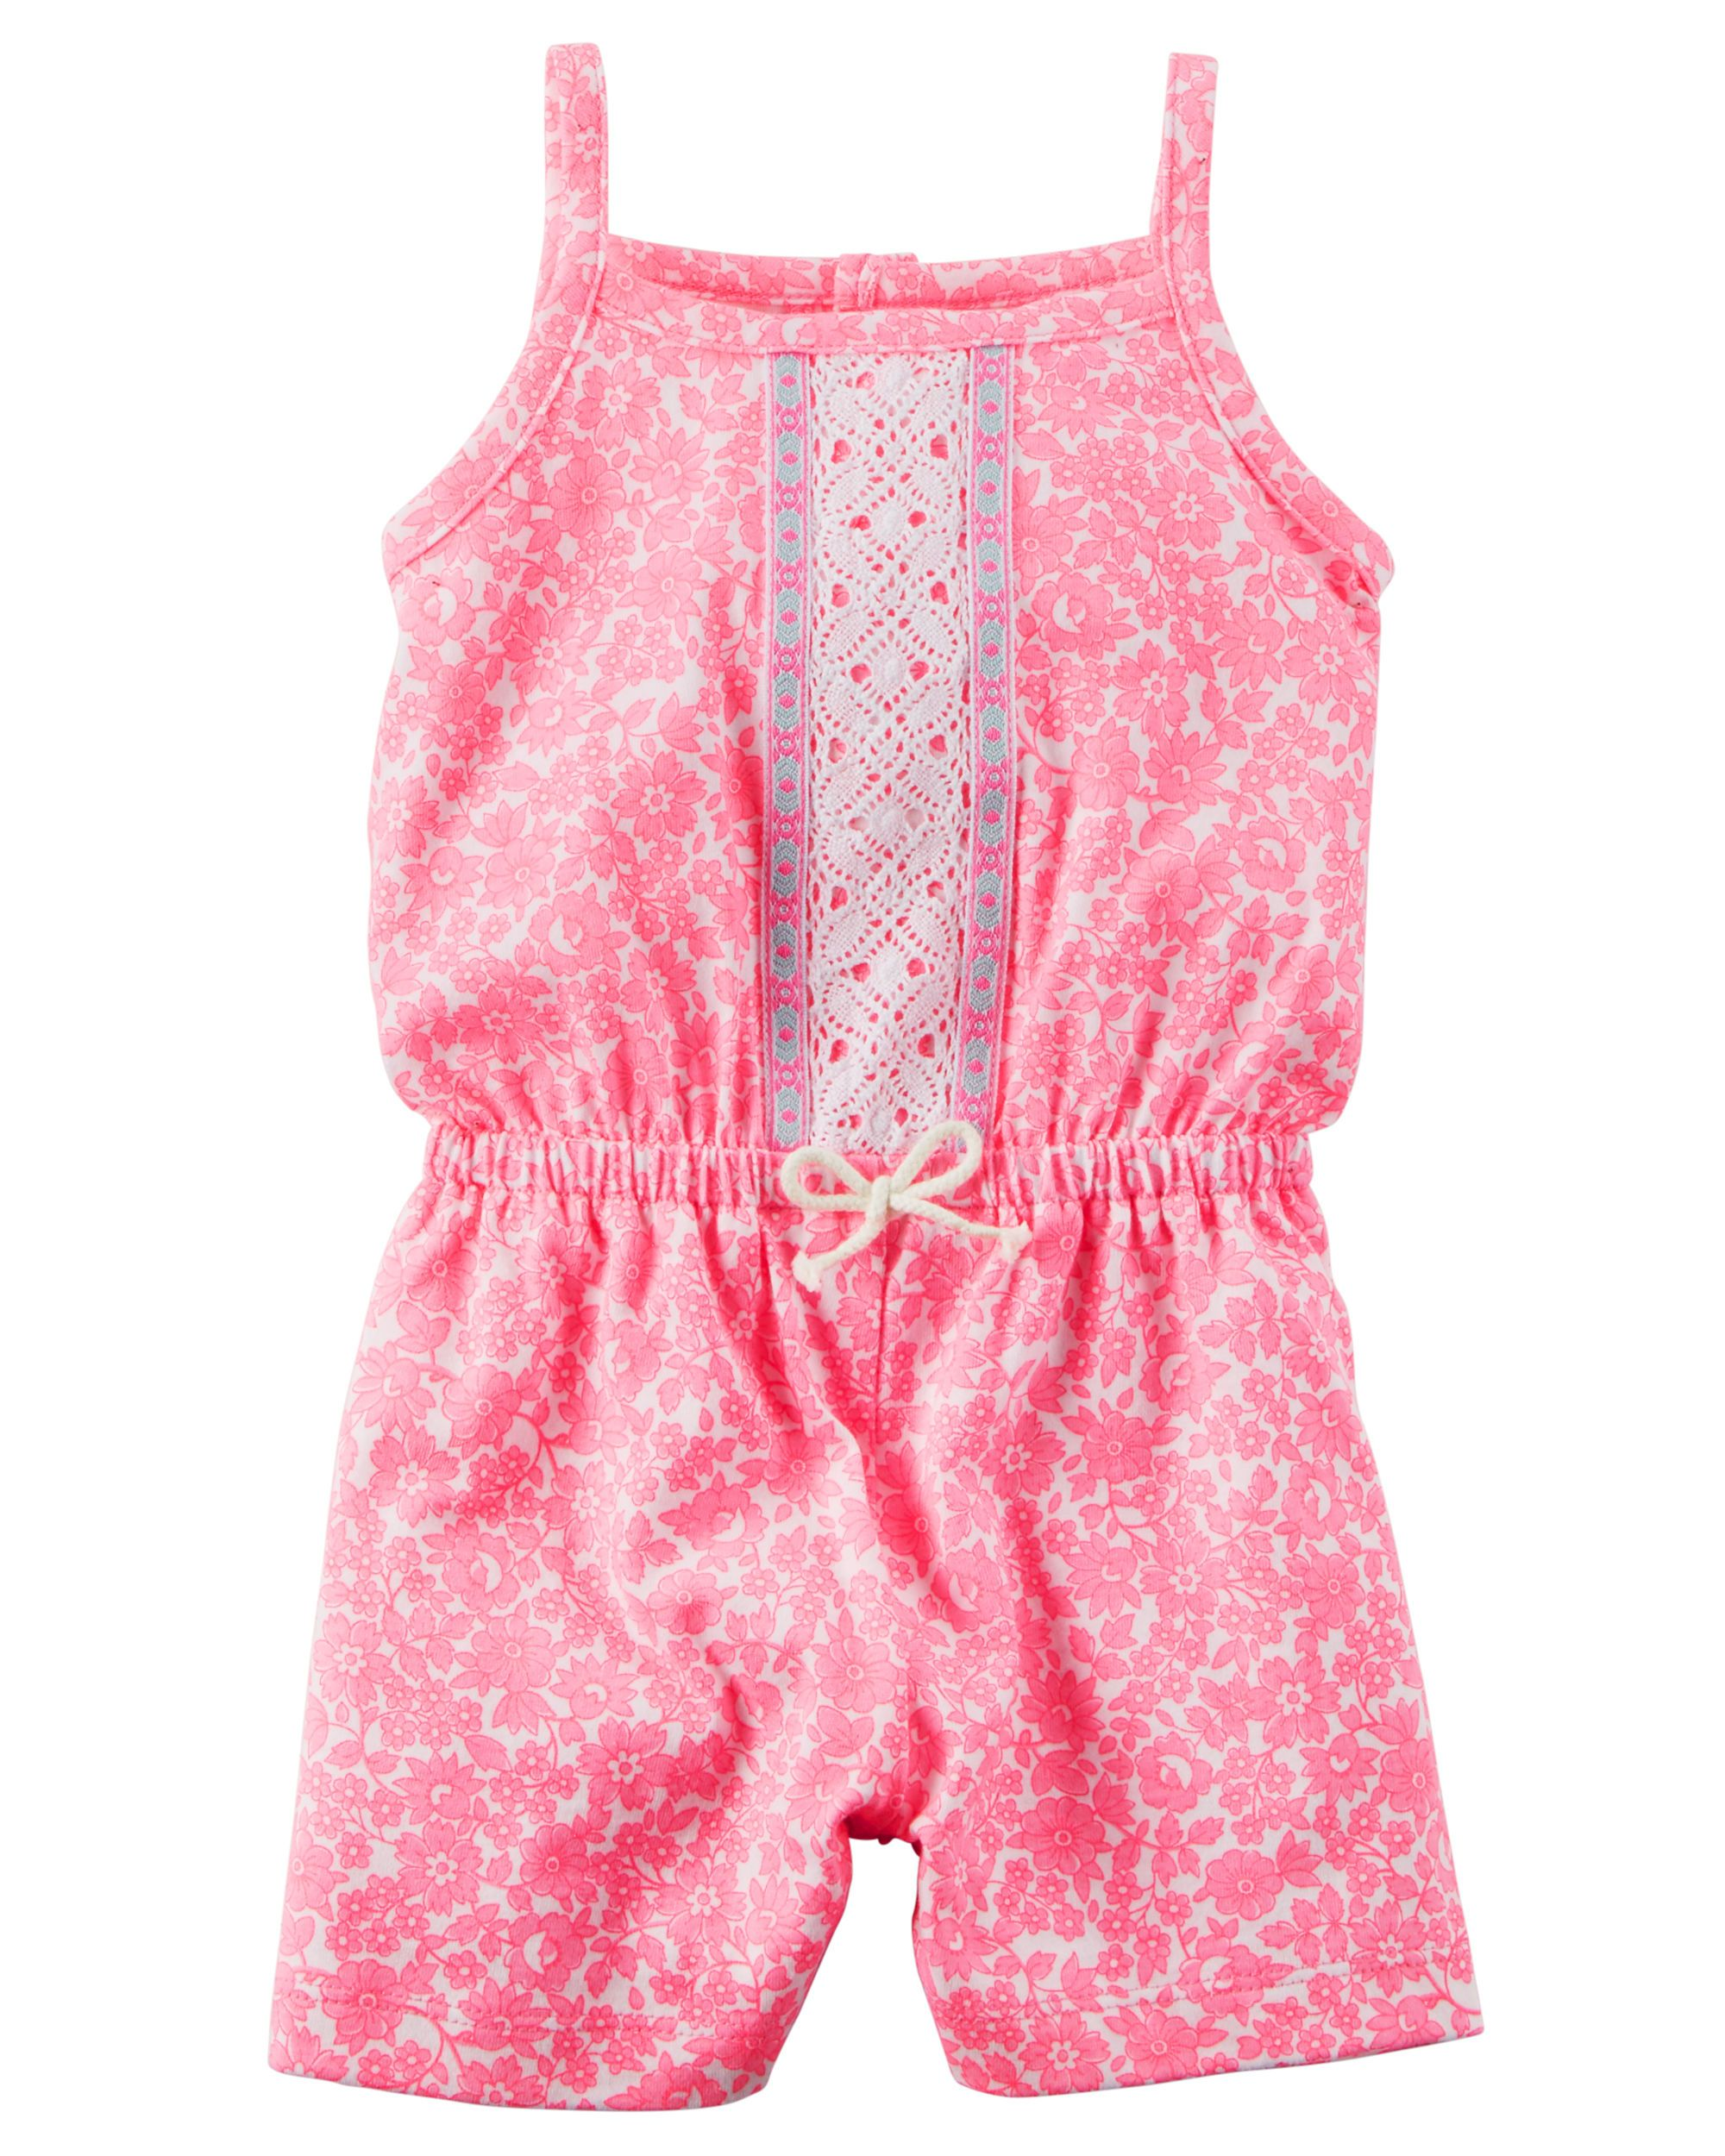 29322a216e7c Cute spring or summer baby girl outfit